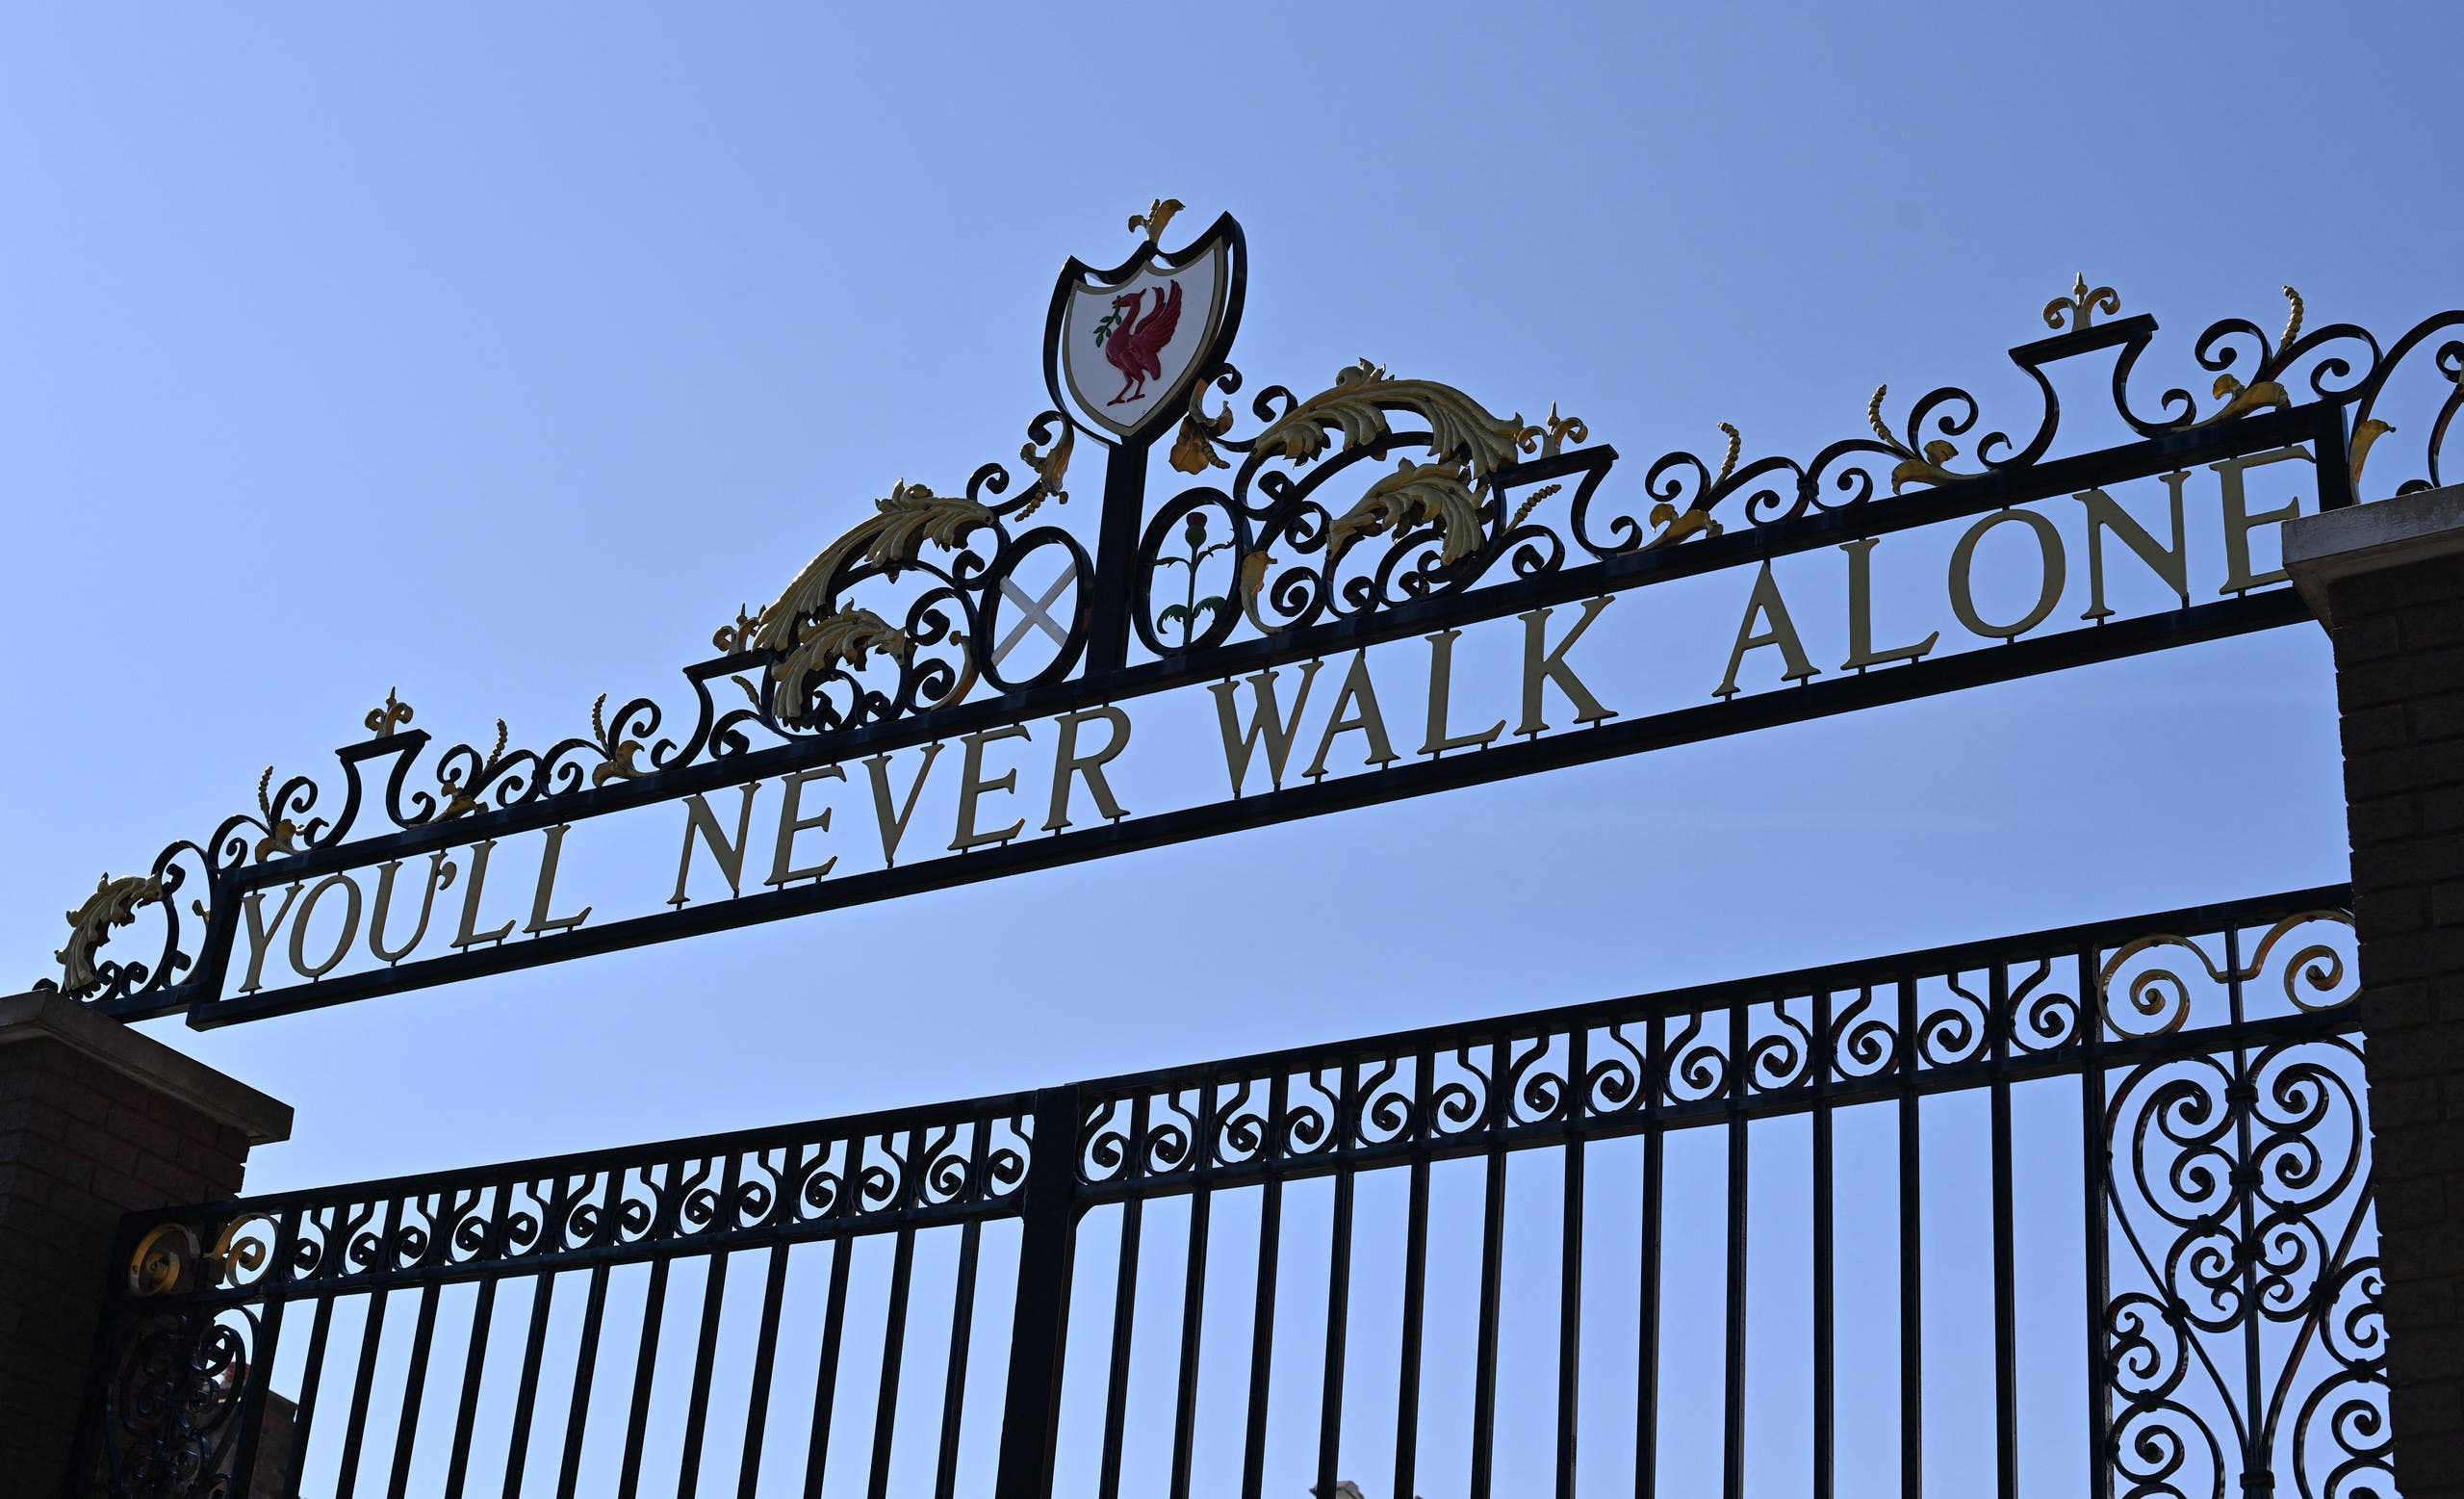 You'll Never Walk Alone, lyrics from a song by Gerry and the Pacemakers, is pictured on the Shankly Gates at Anfield stadium, home of English Premier League football club Liverpool, is pictured in Liverpool, north west England on April 19, 2021. (AFP)